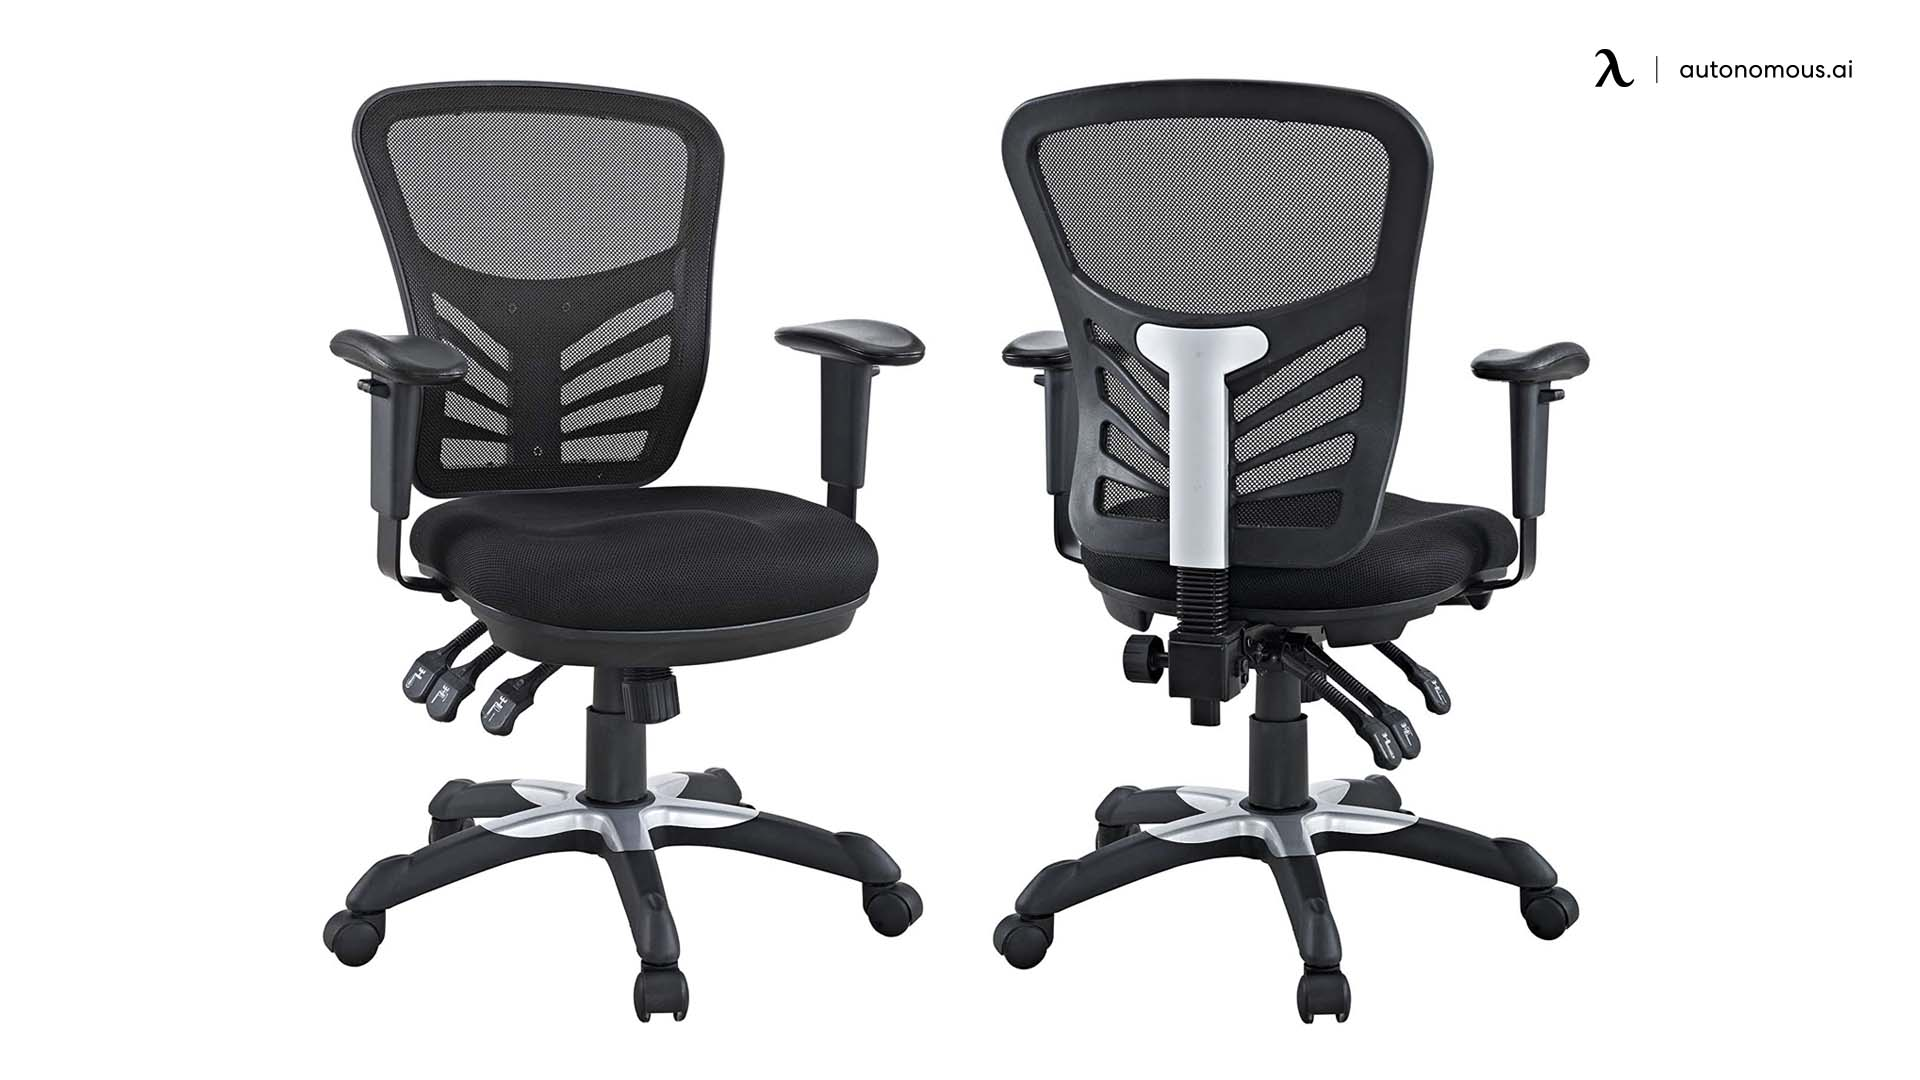 Modway Articulate Mesh Chair with Lumbar Support